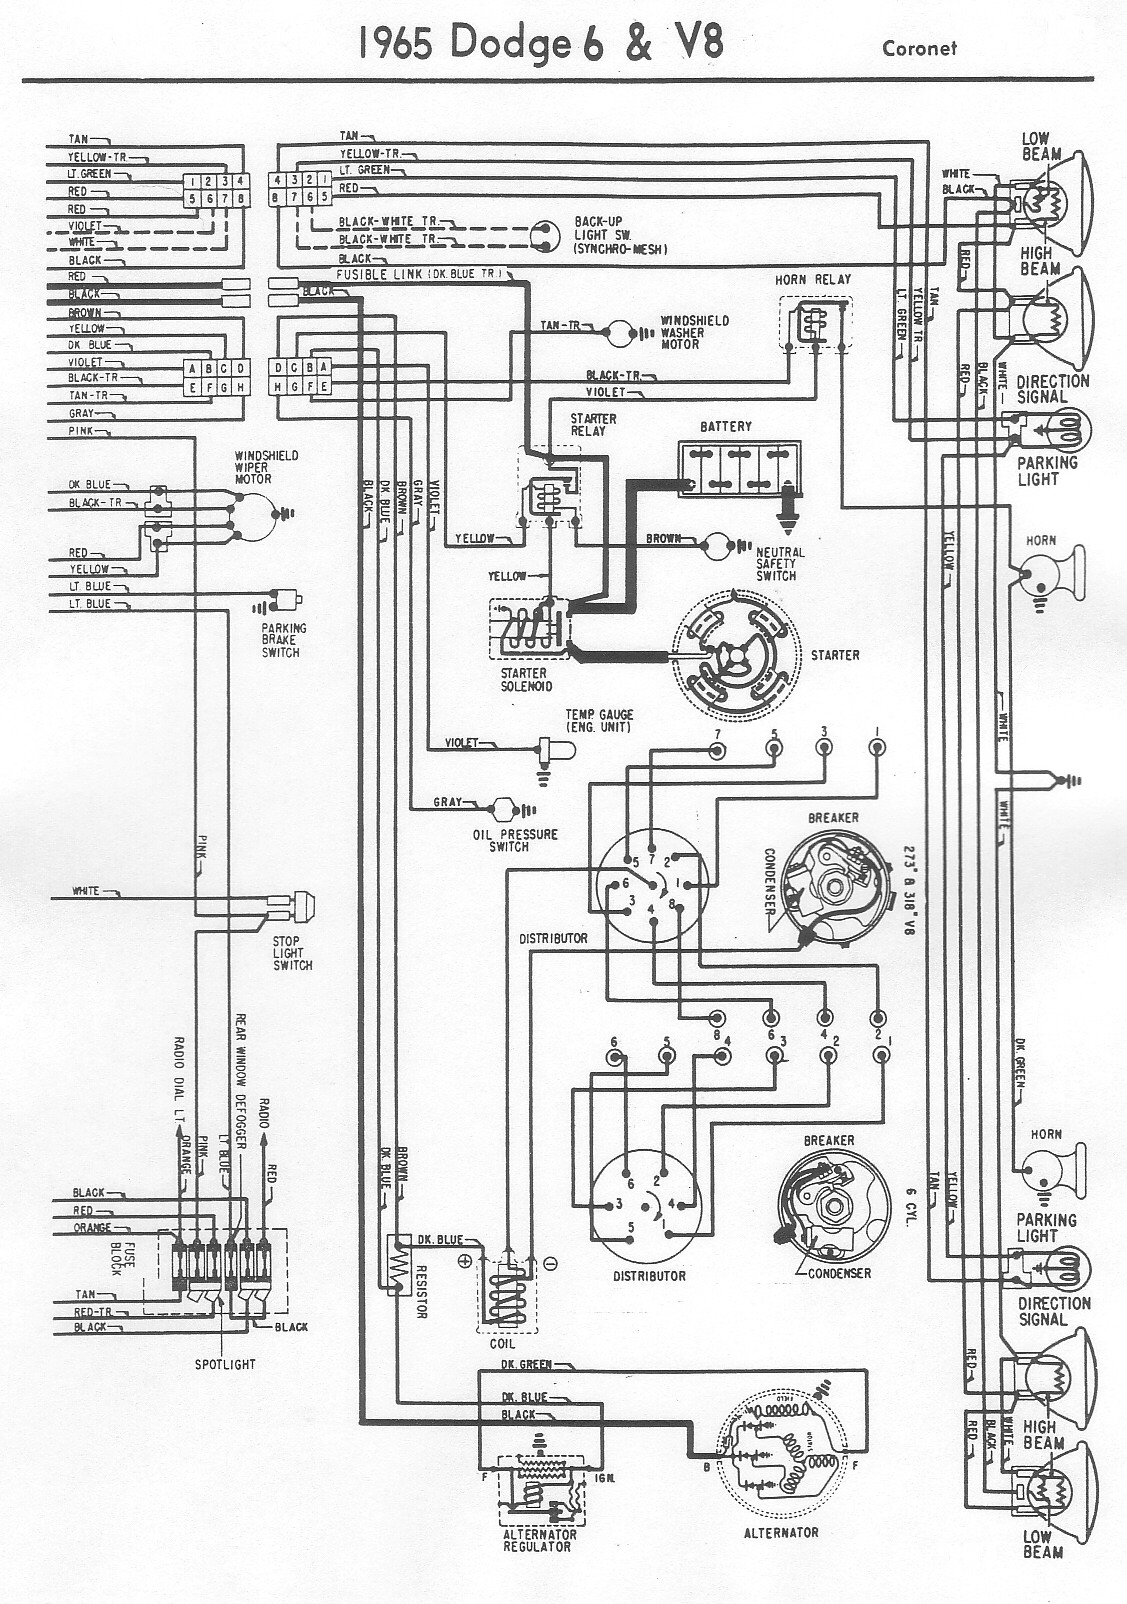 hight resolution of 1965 plymouth satellite wiring diagram trusted wiring diagram 1968 coronet wiring diagram 1968 satellite wiring diagram